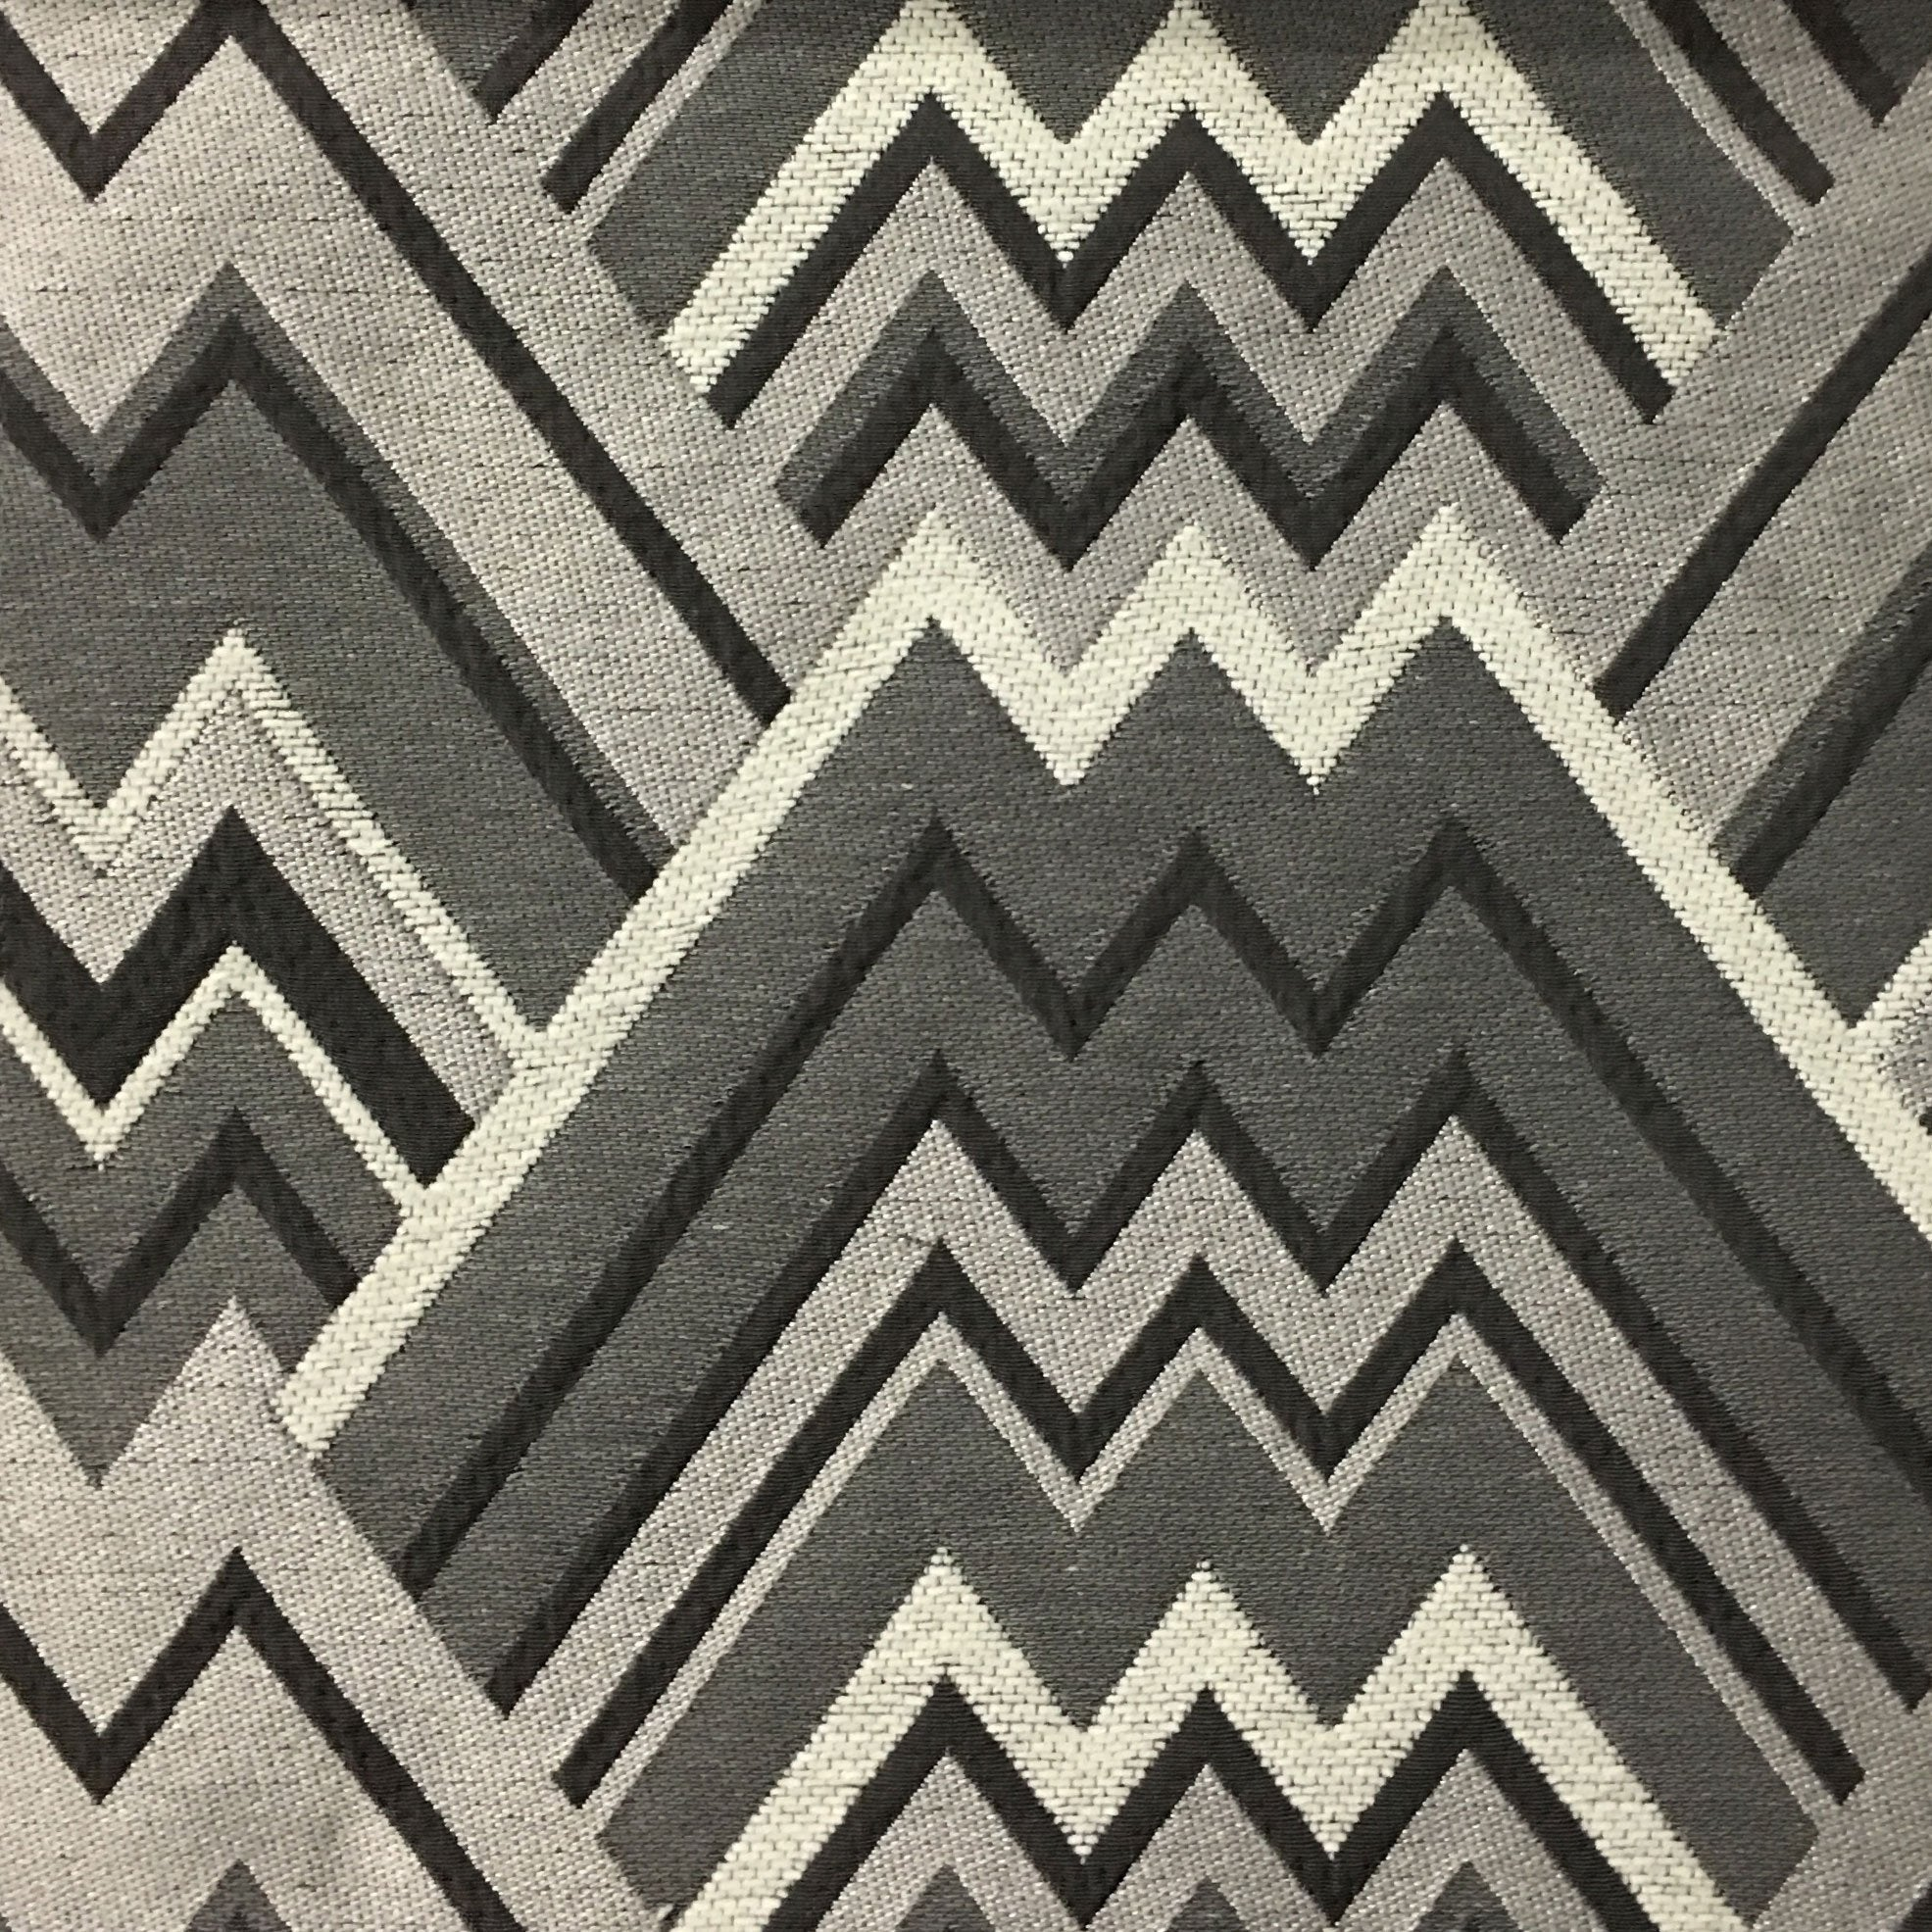 Mesa Mixed Construction Geometric Upholstery Fabric By The Yard